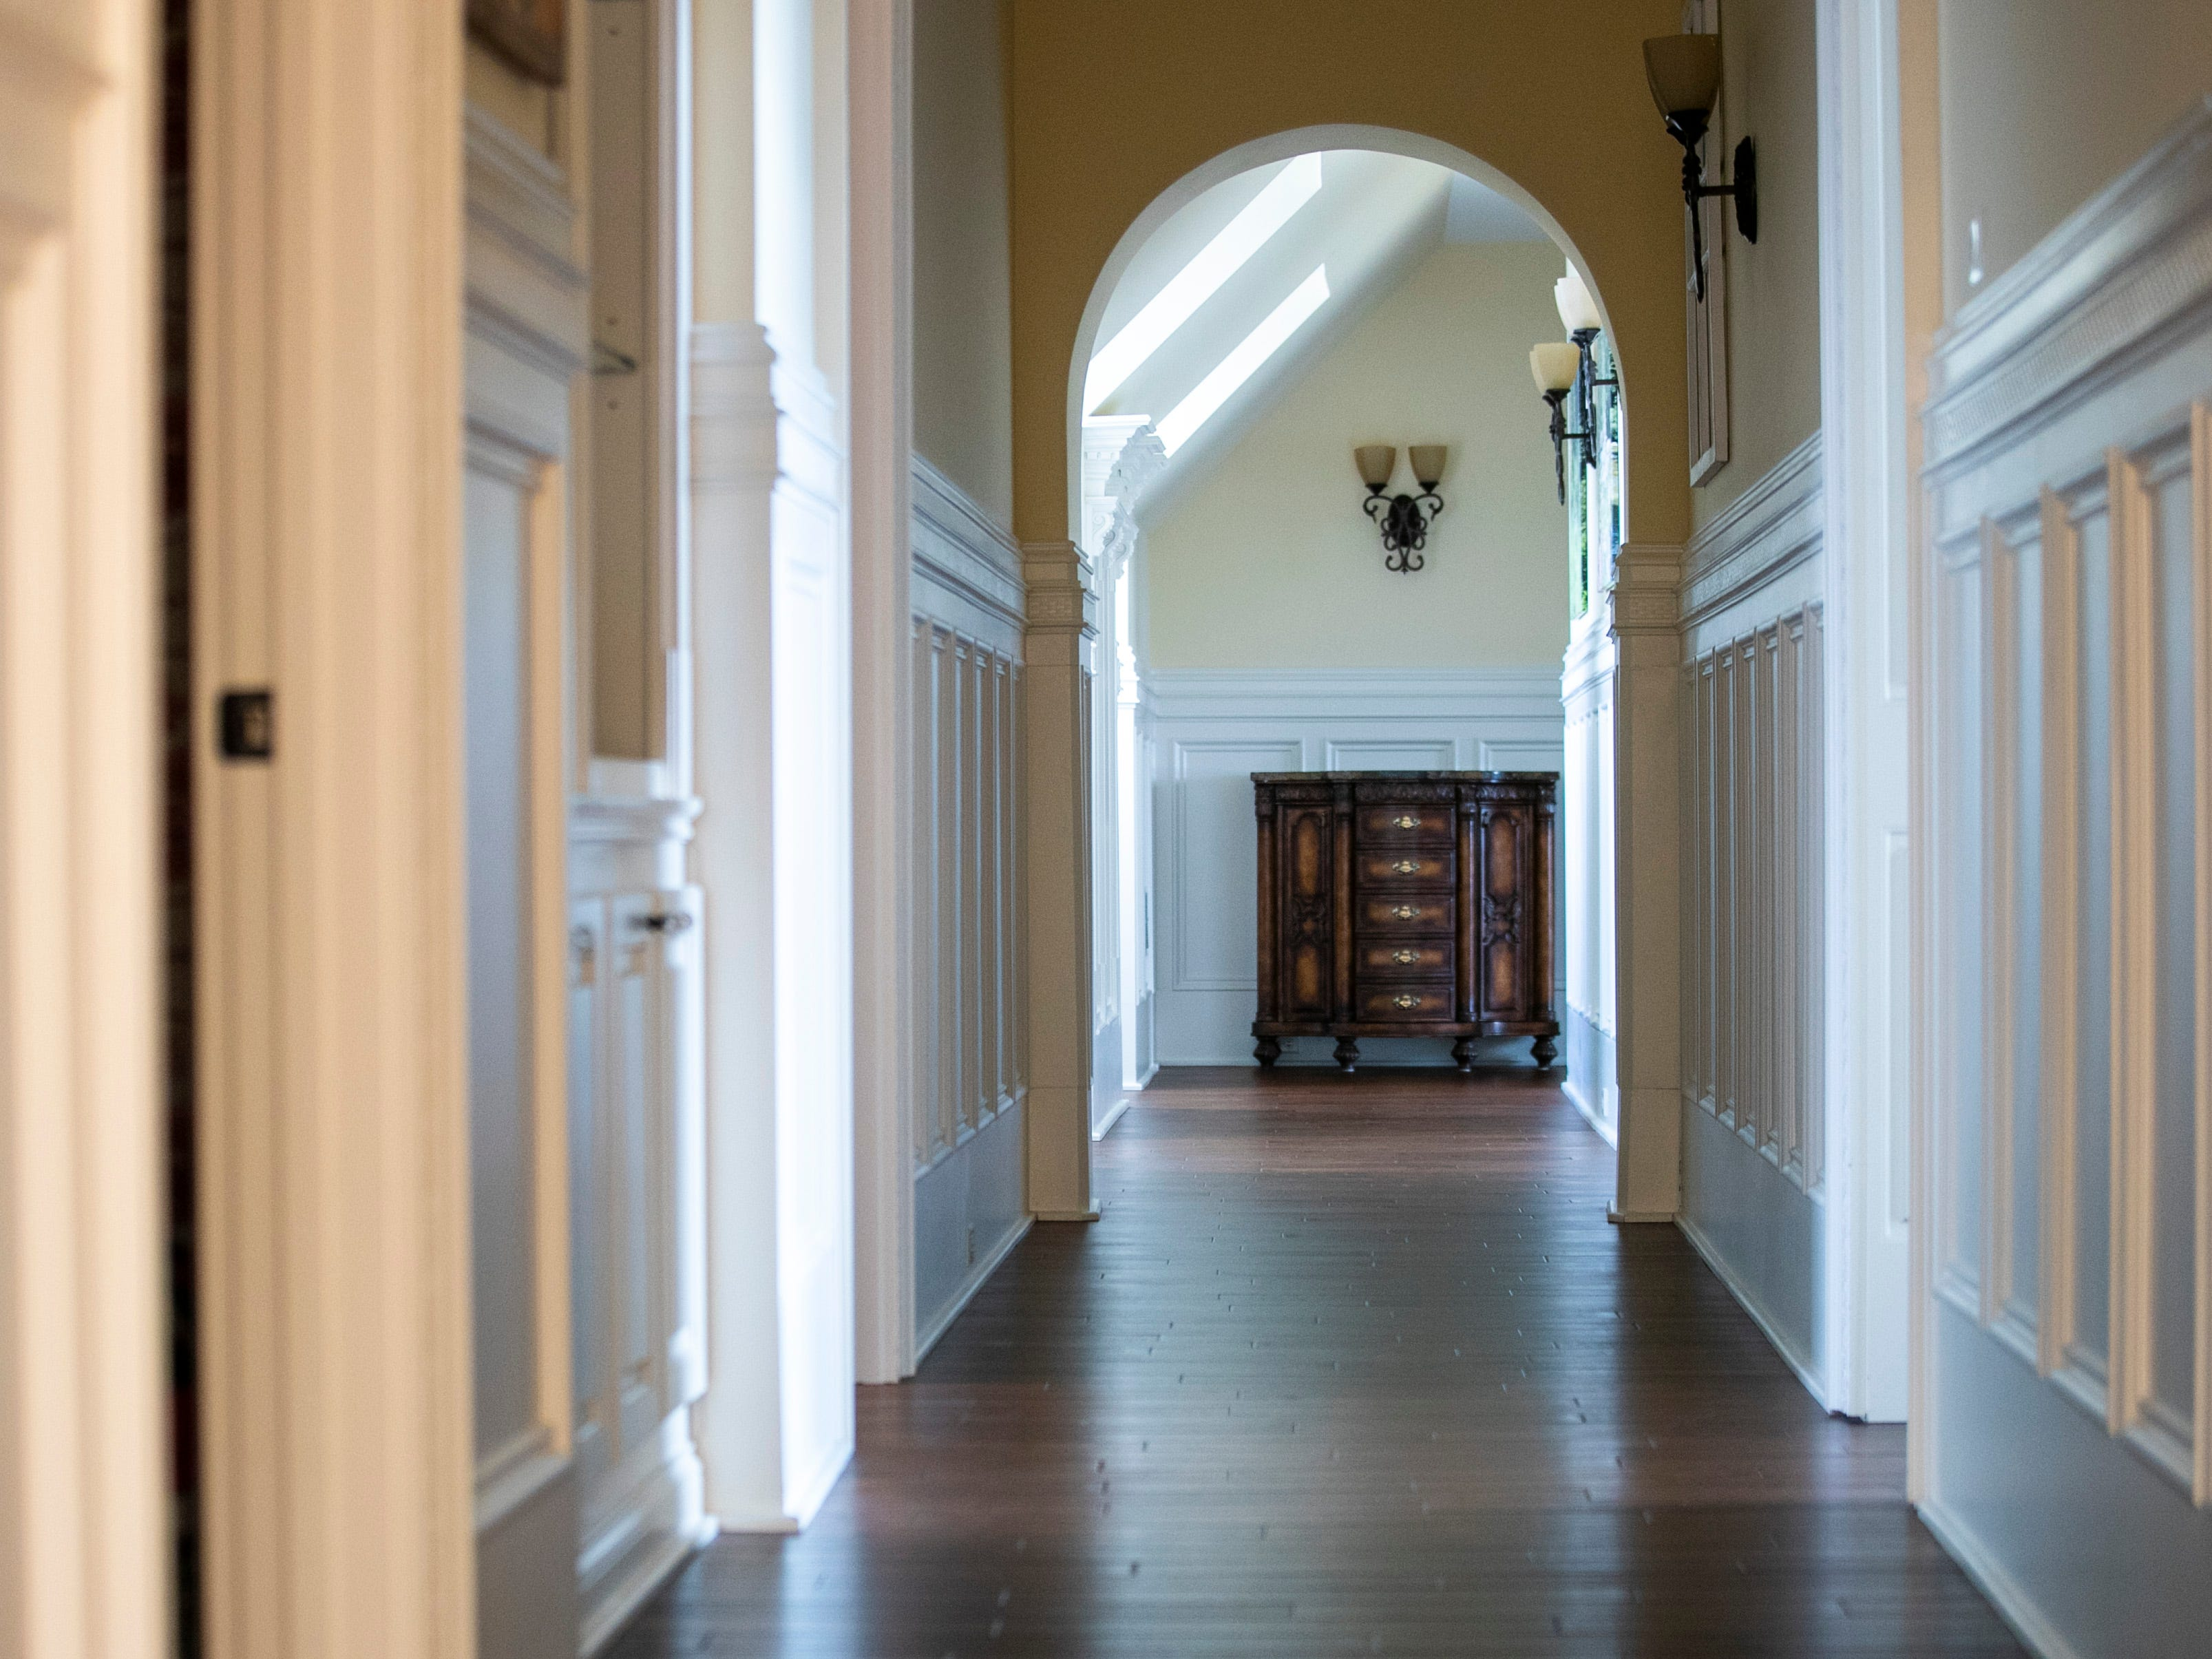 The second floor of the Mack home features a long hallway that connects to a large rec room.